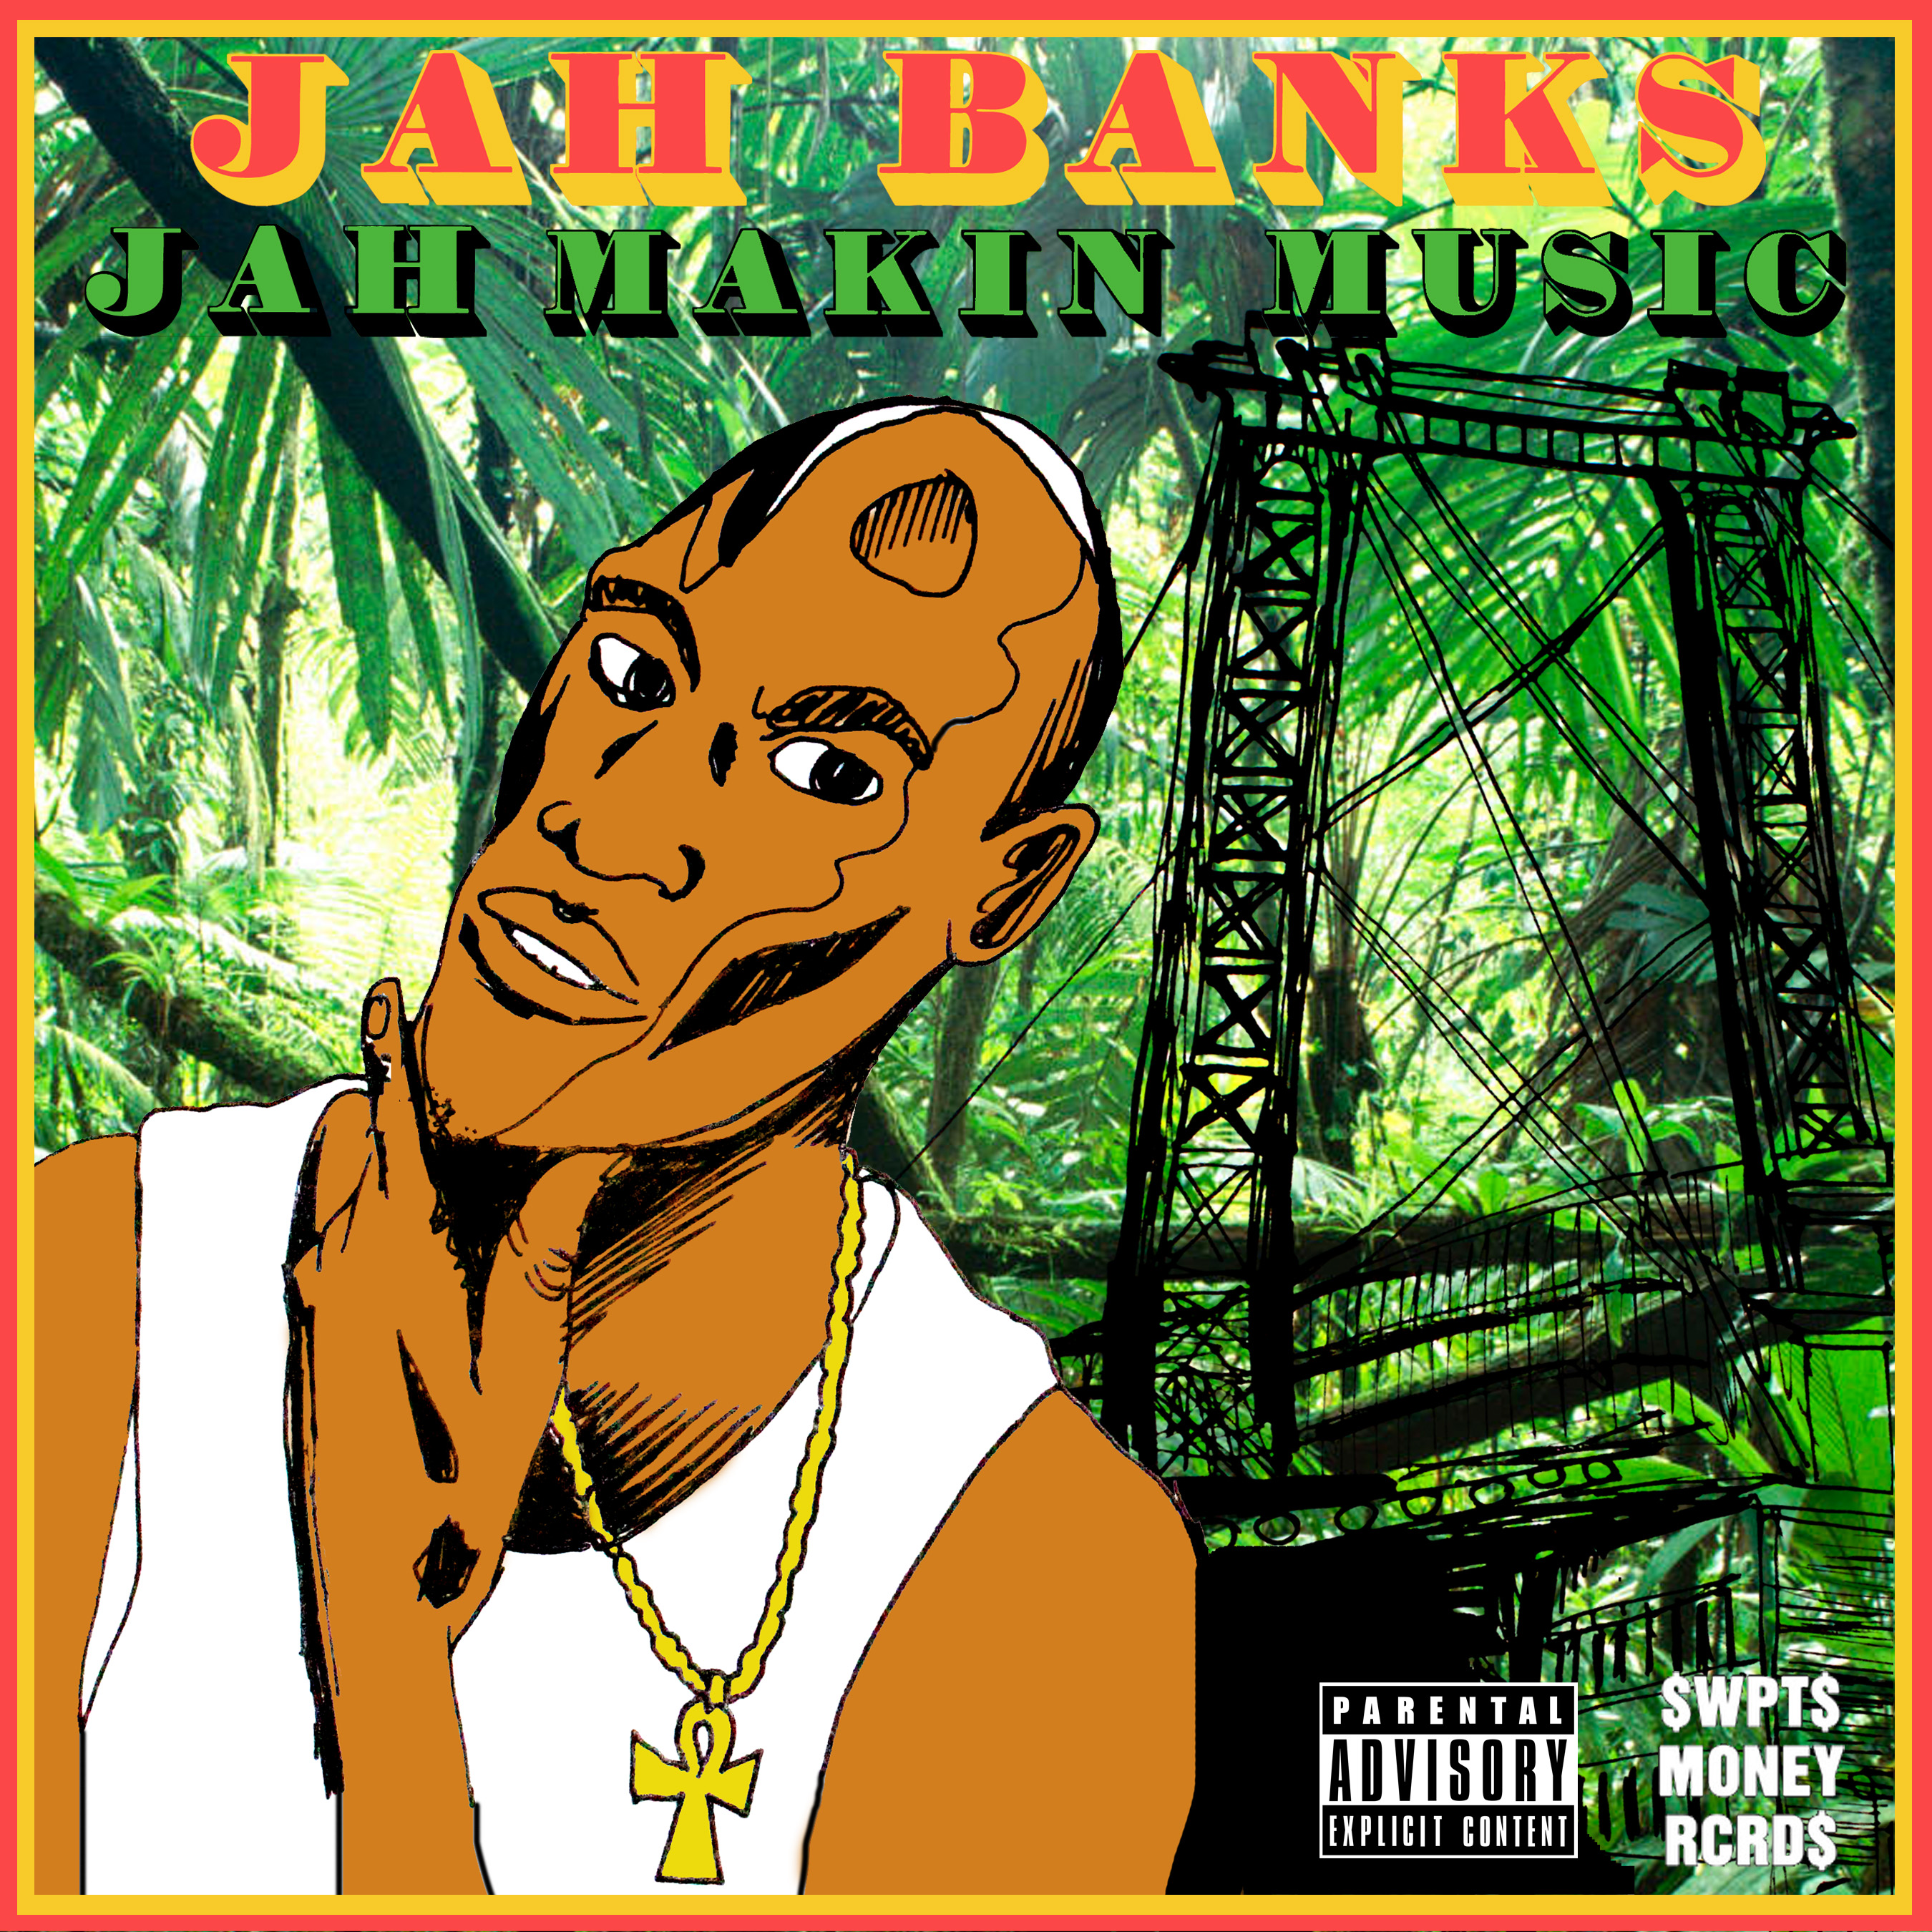 Jah-Banks-Jah-Making-Music